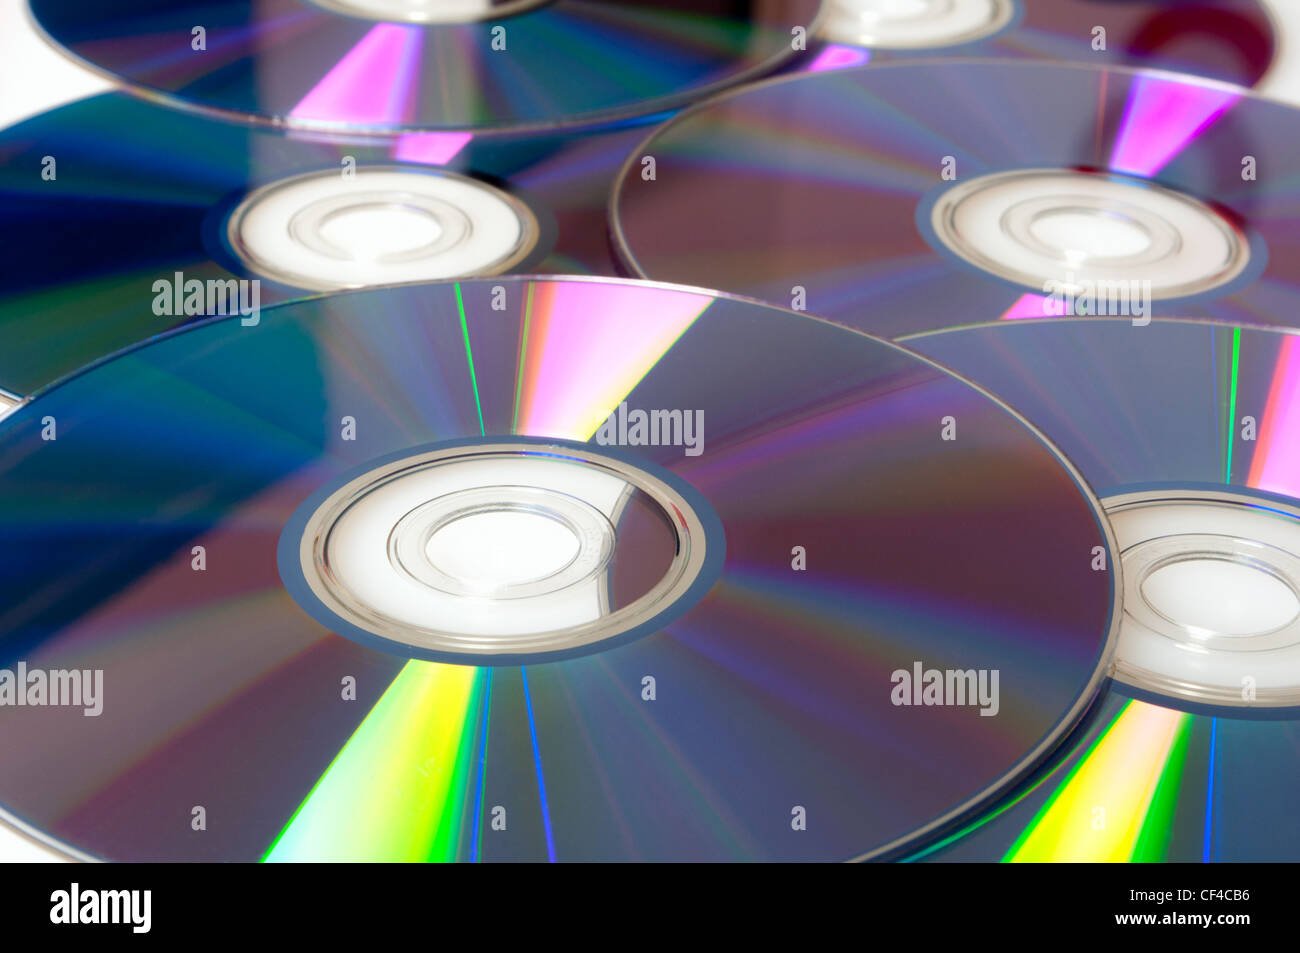 Background of Many Shiny CD Compact Discs - Stock Image